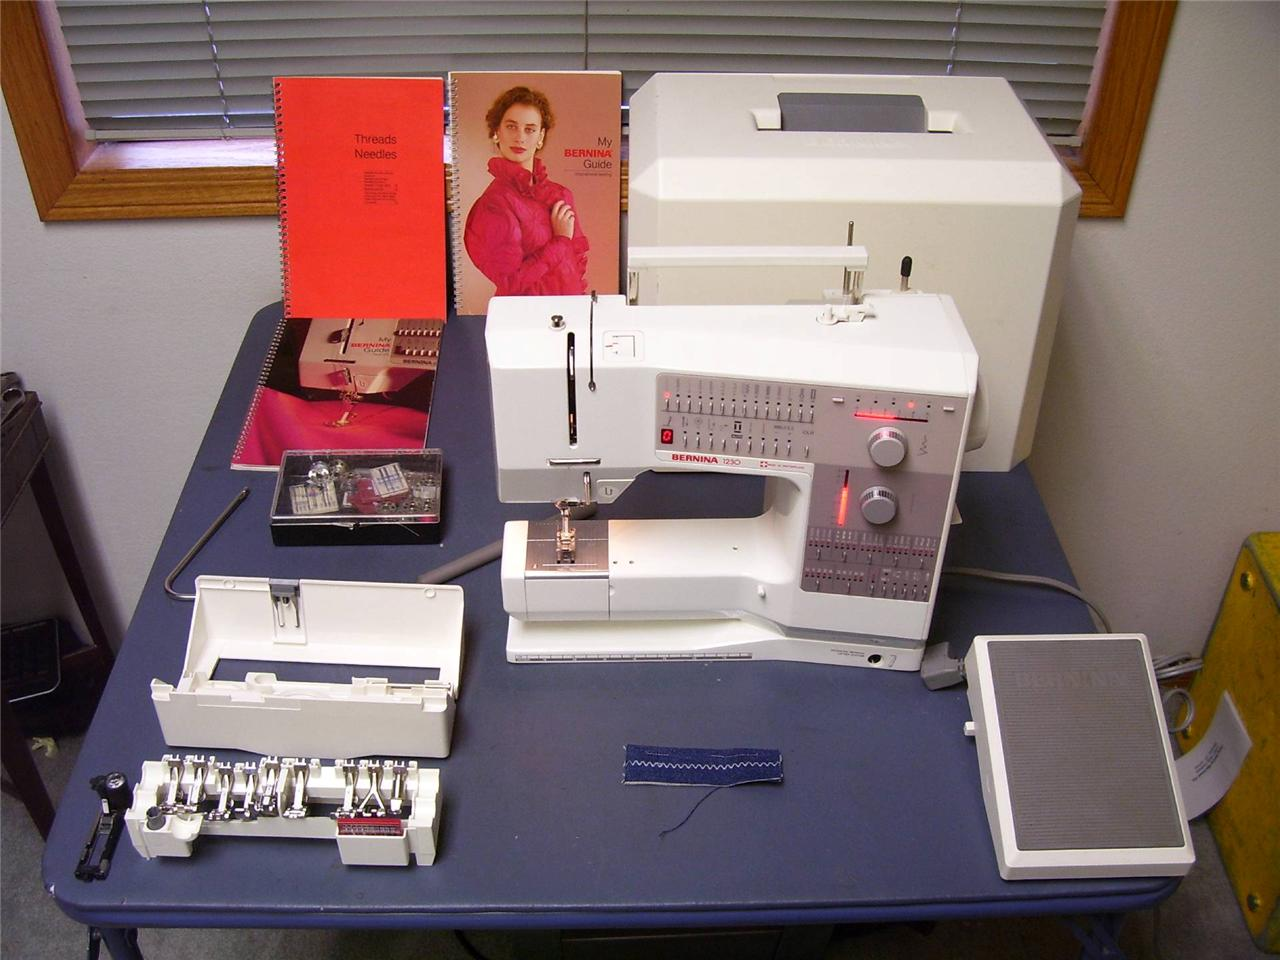 Bernina 1230 Electronic Sewing Quilting machine One Owner in excellent condition